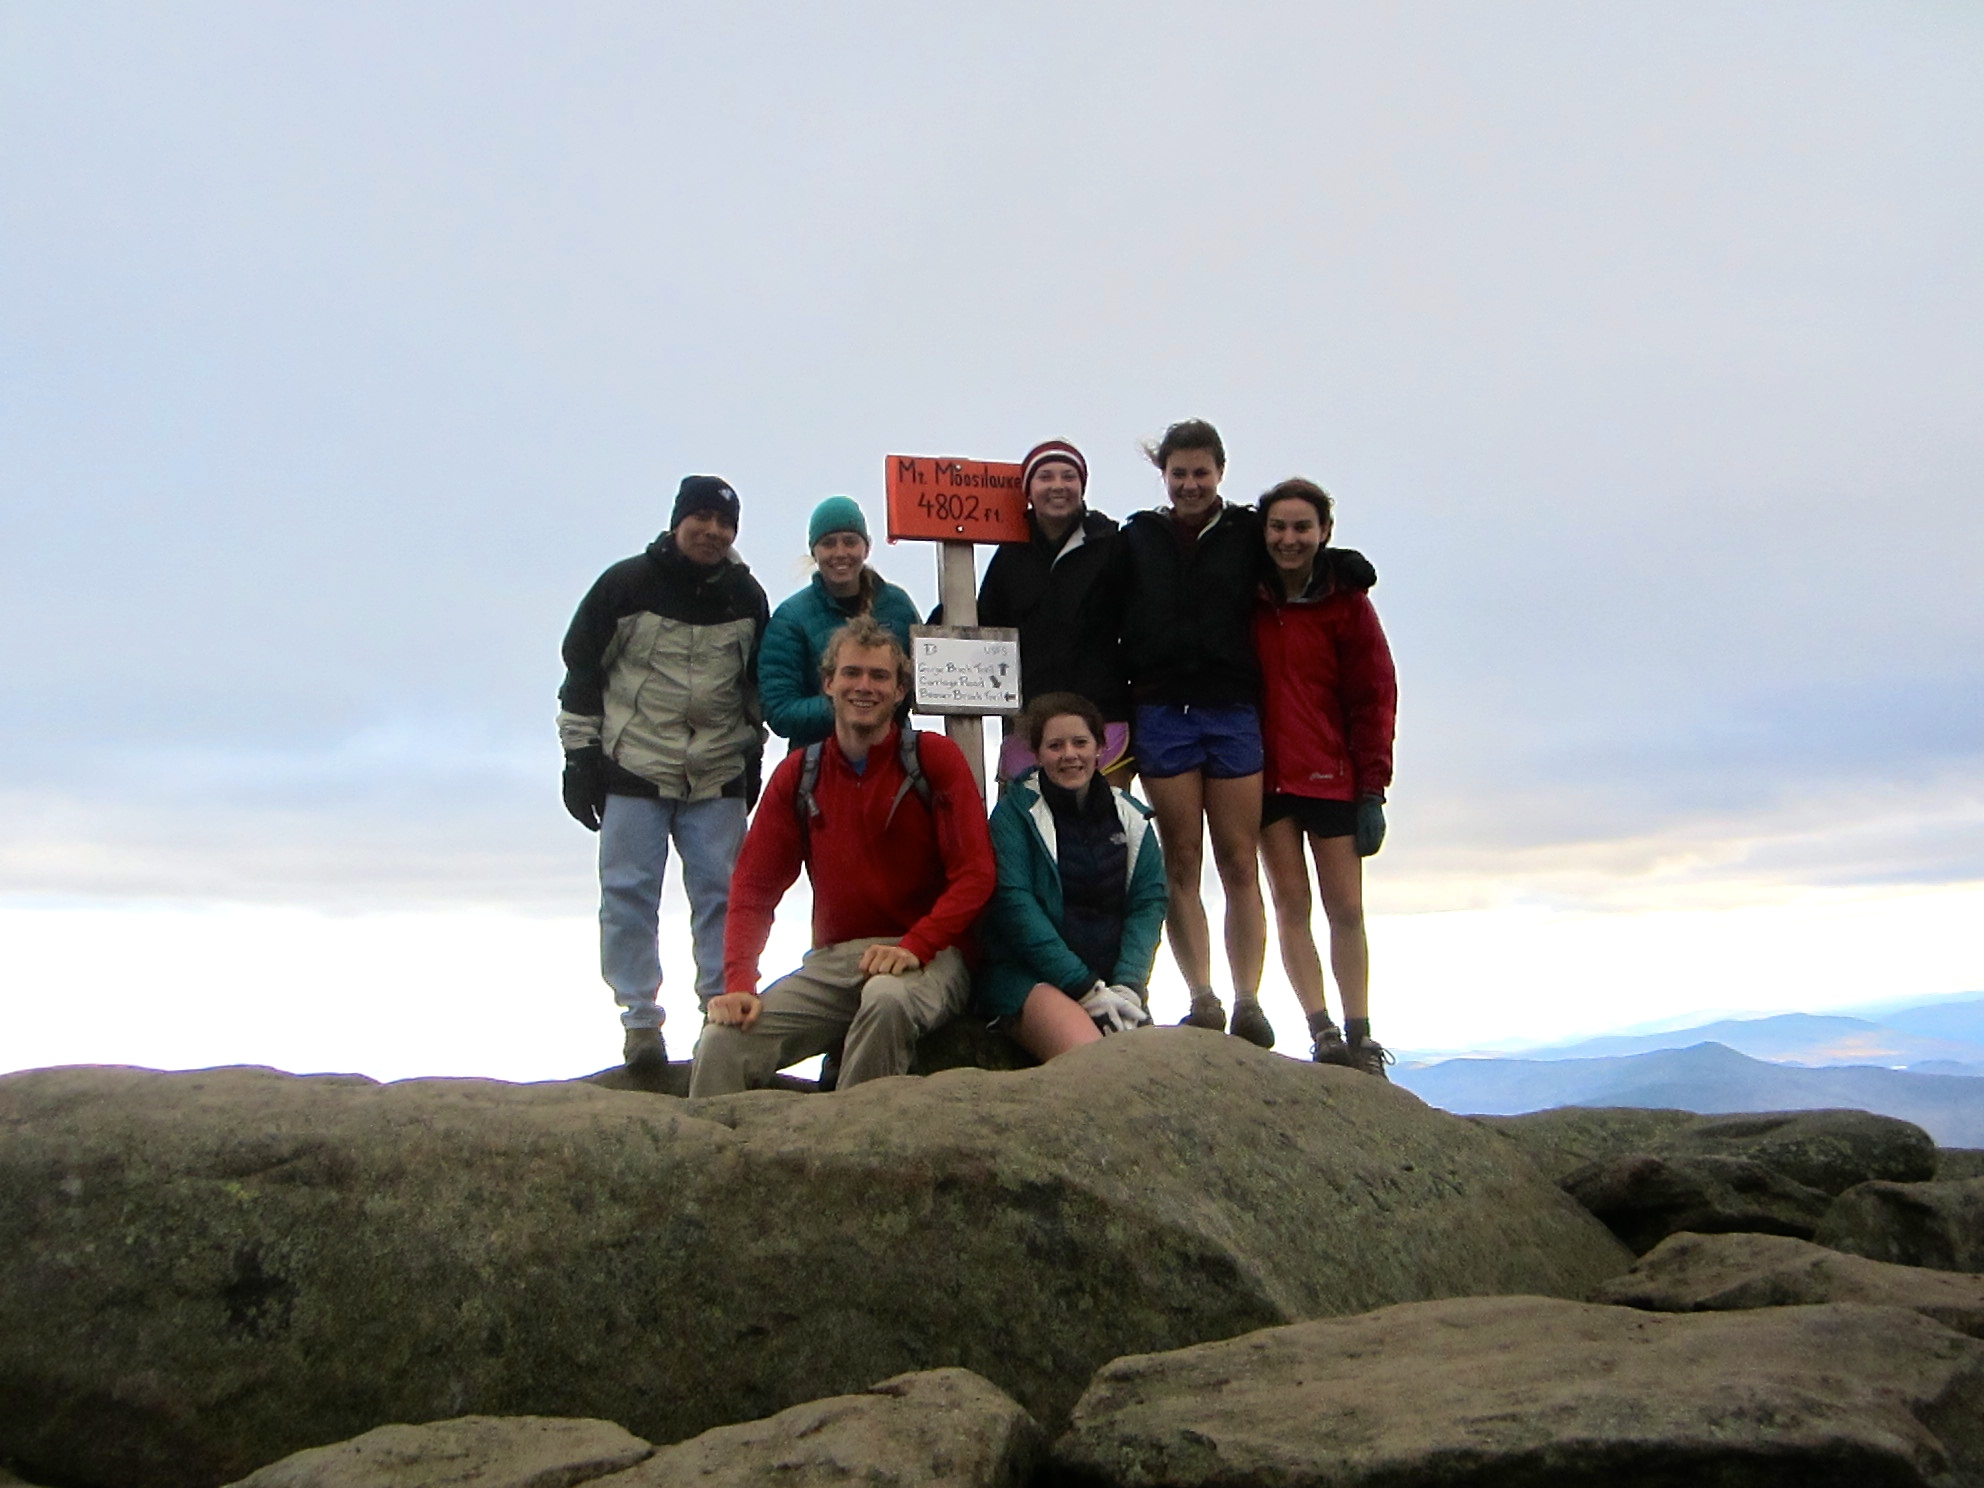 The Outdoors Club poses at the summit of Mt. Moosilauke